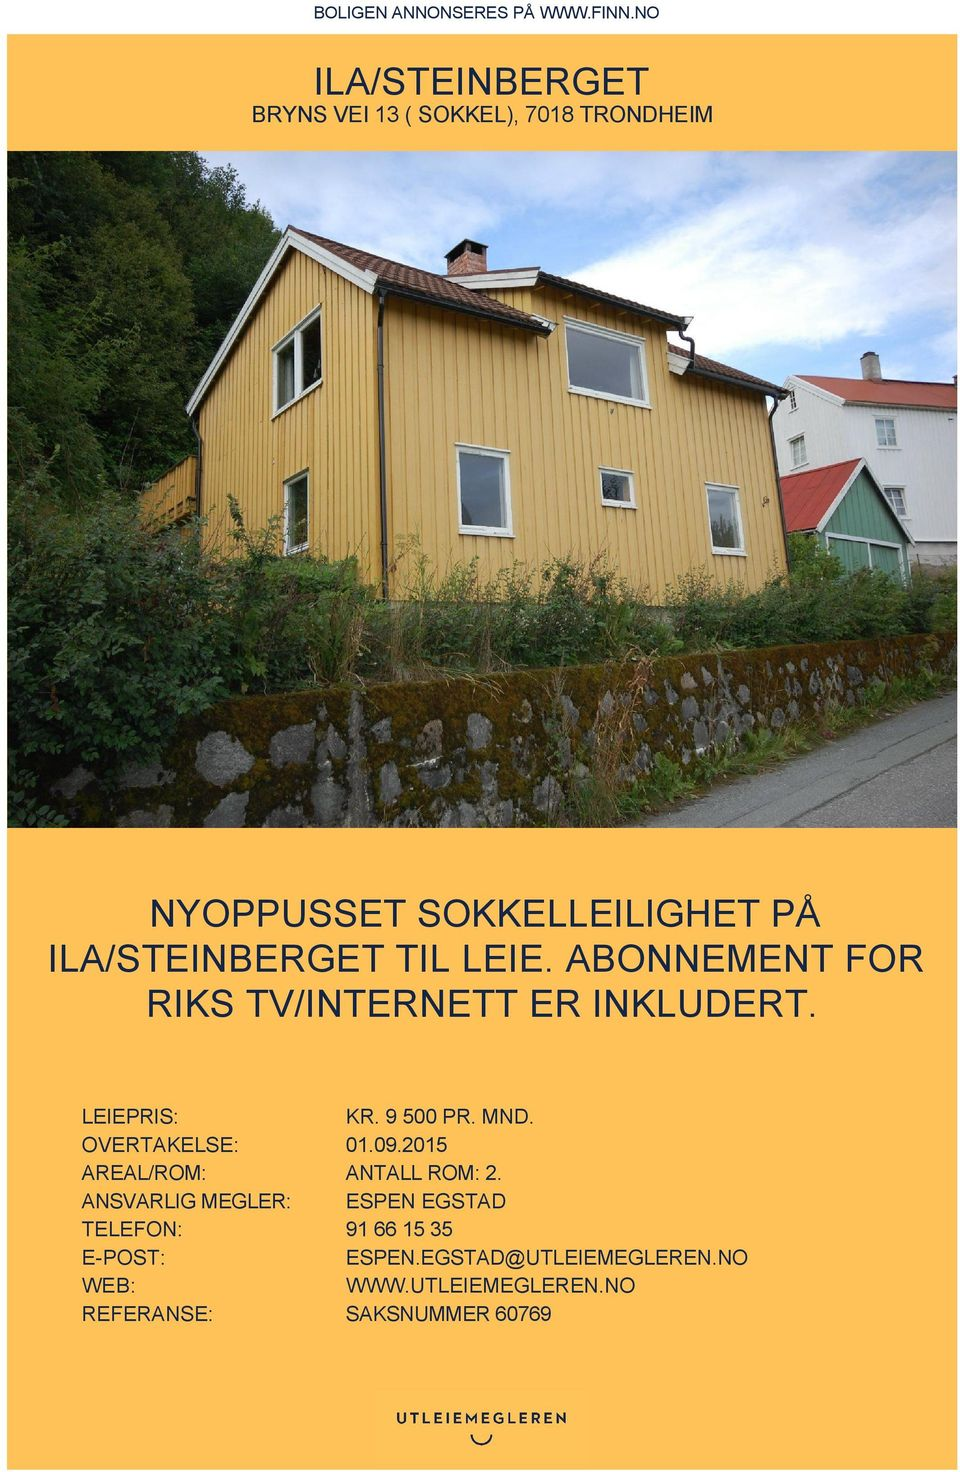 TIL LEIE. ABONNEMENT FOR RIKS TV/INTERNETT ER INKLUDERT. LEIEPRIS: KR. 9 500 PR. MND. OVERTAKELSE: 01.